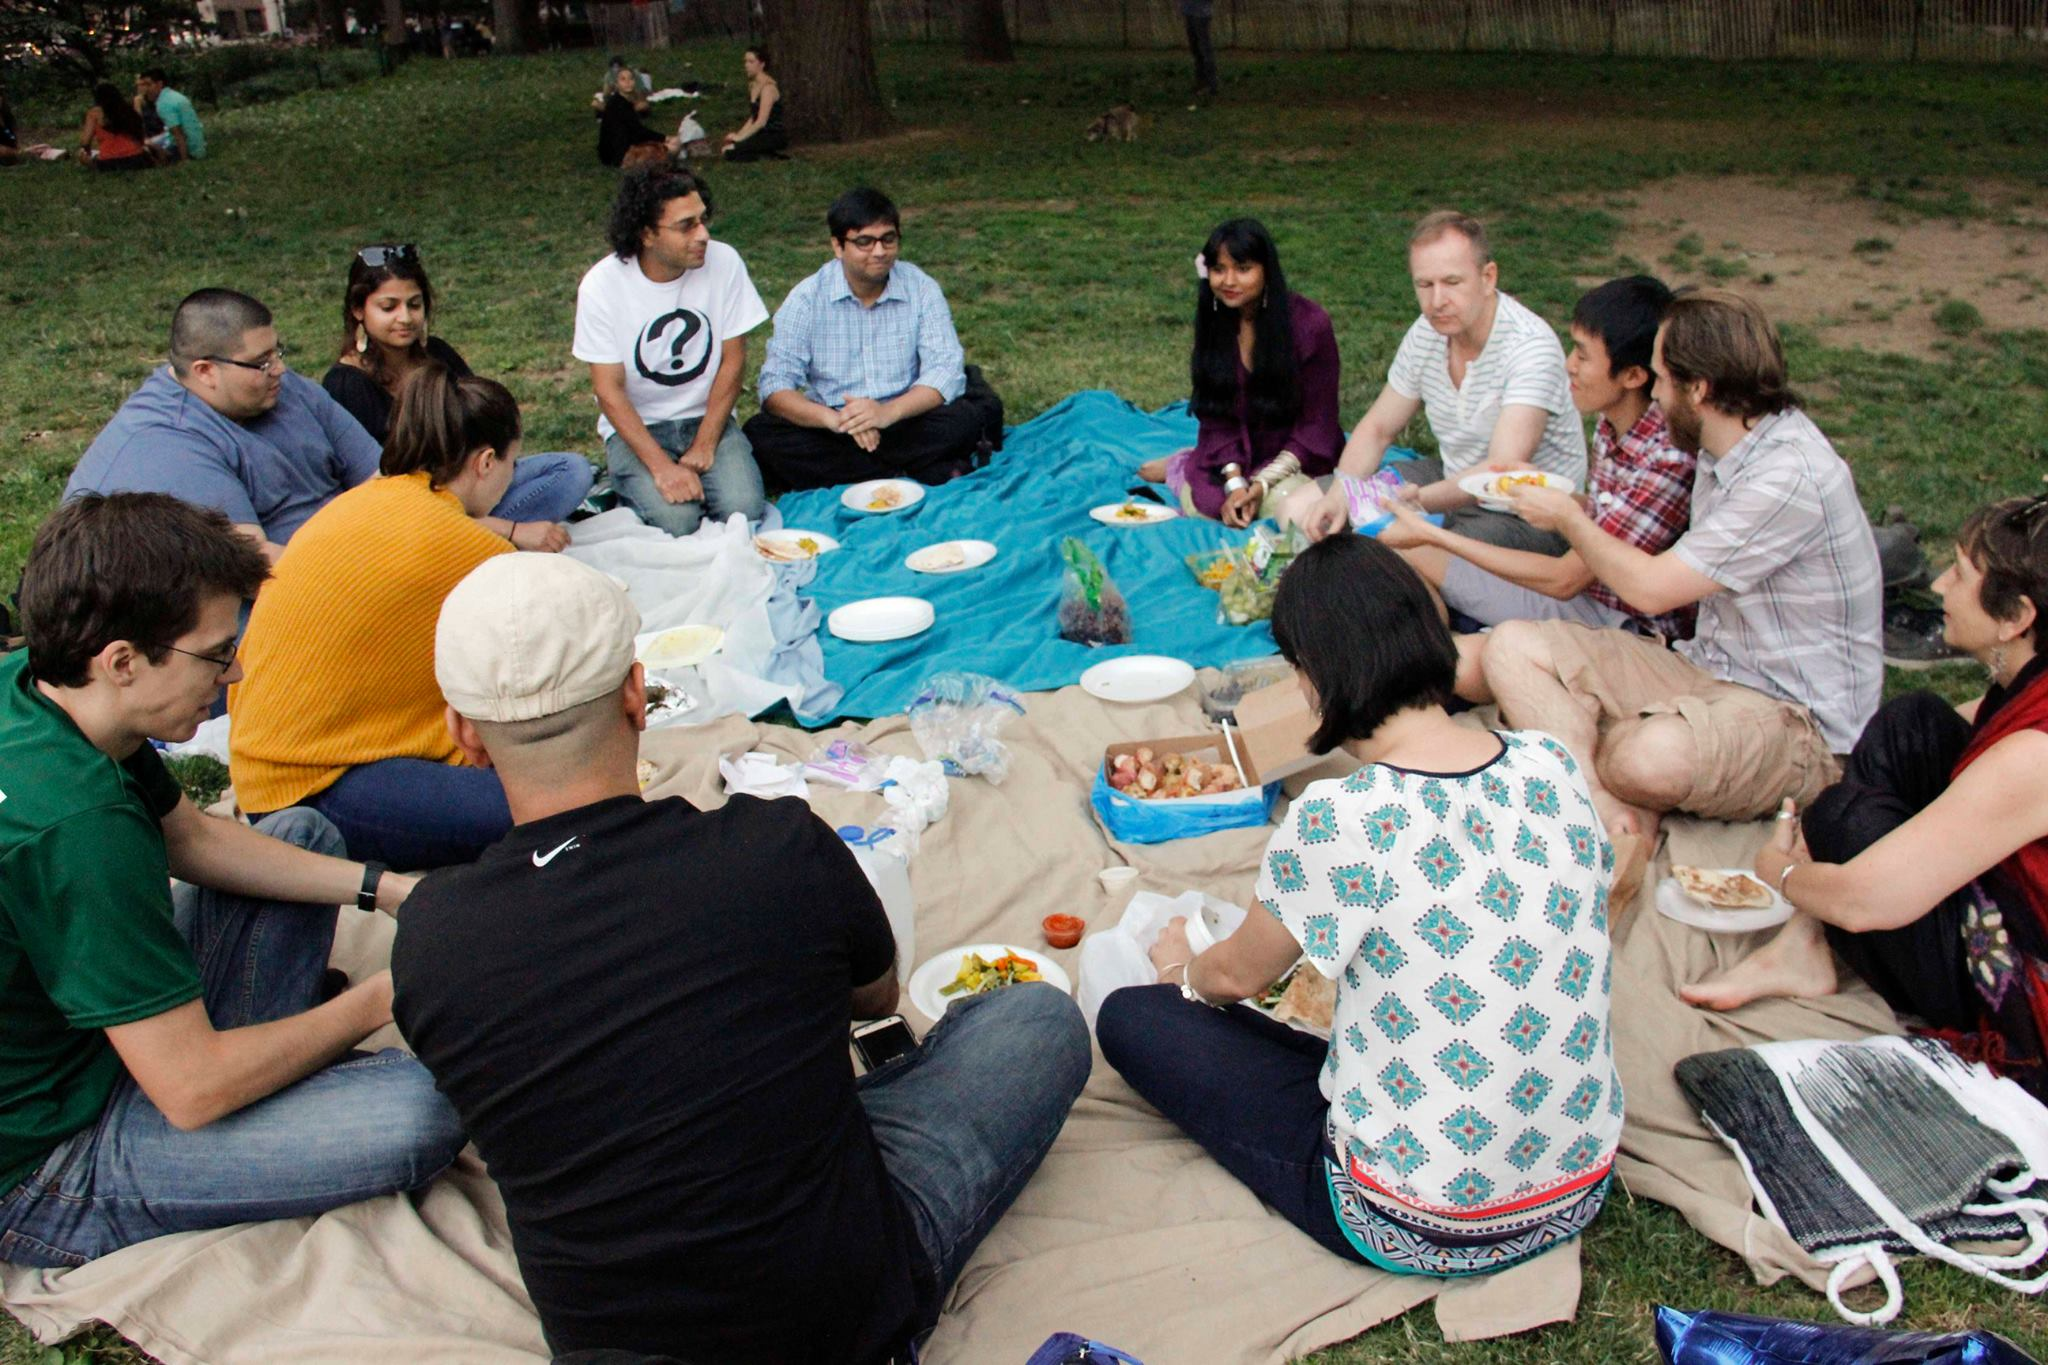 LGBTQ Muslims and Allies Iftar, July 2, 2016, Washington Square Park, New York: Co-organizer with Muslims for Progressive Values.